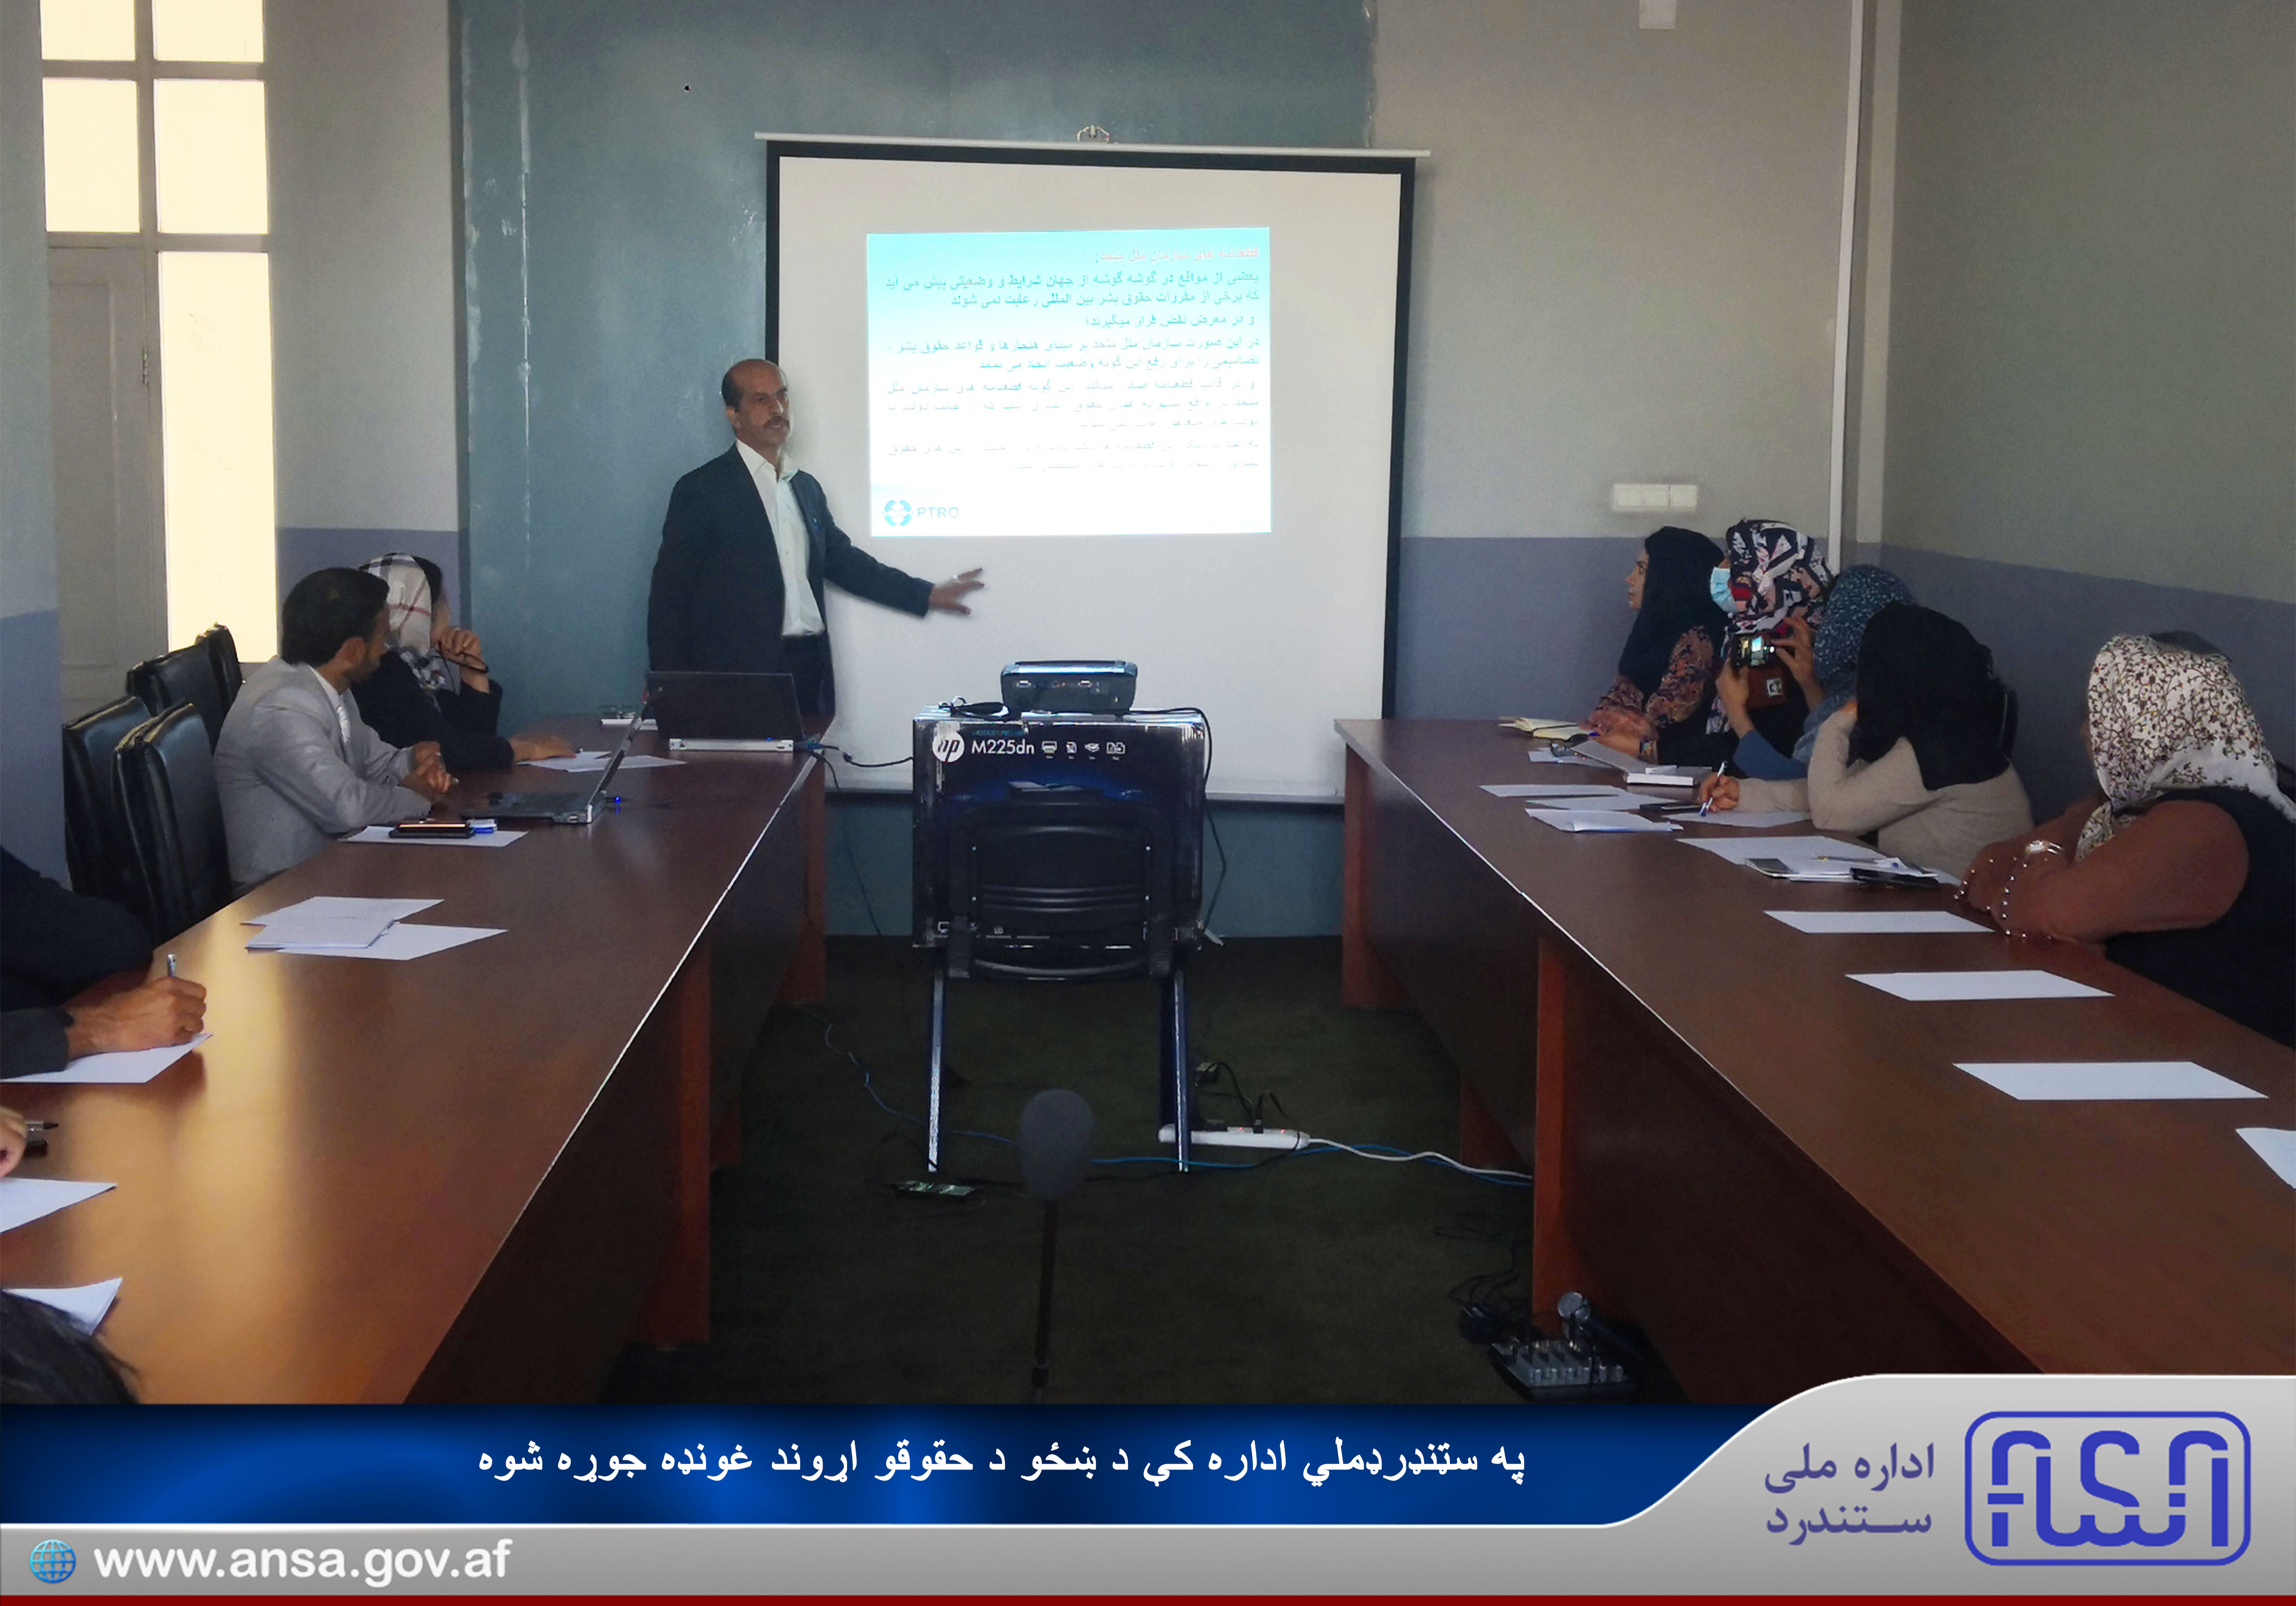 A Training program on women's rights was held at the National Standards Authority.